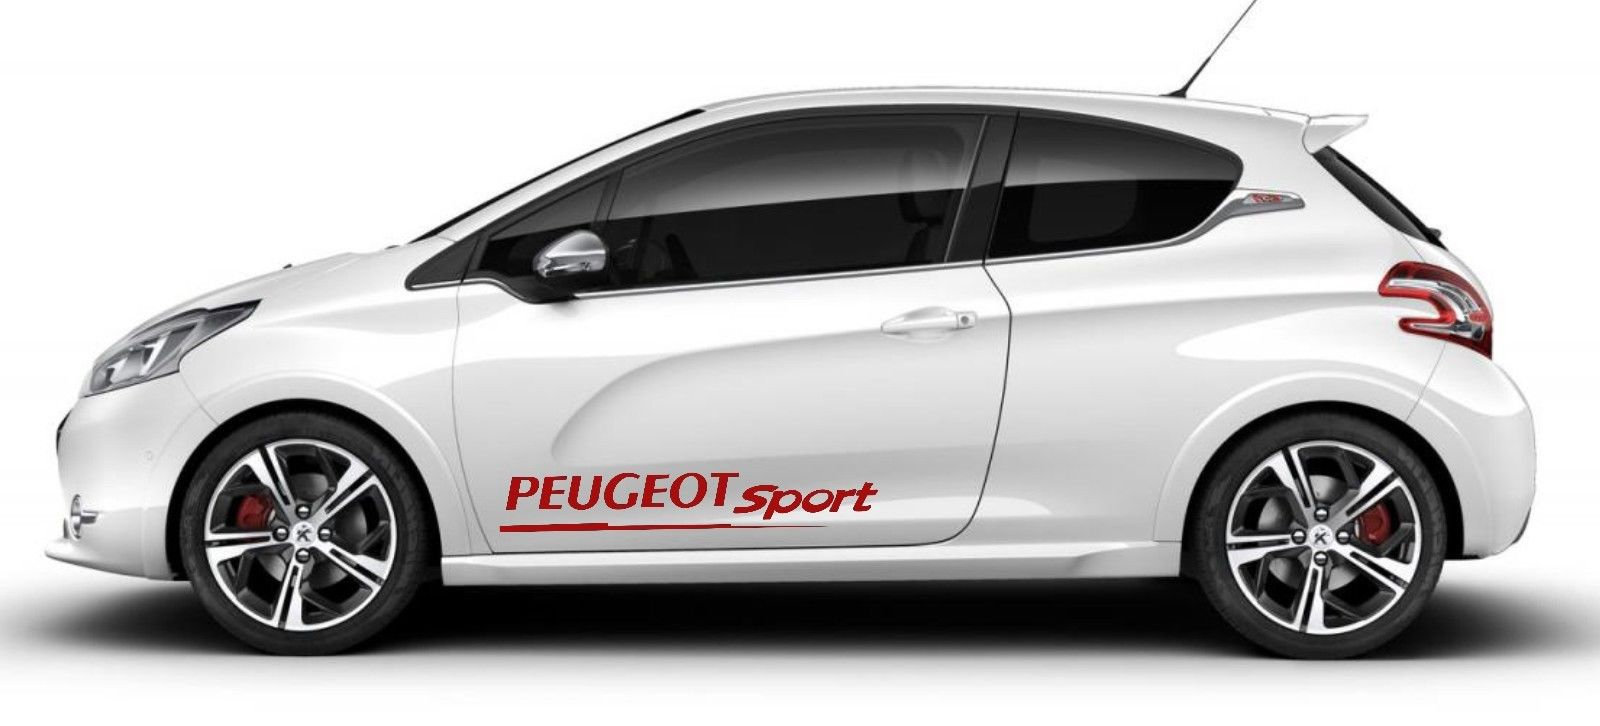 car styling for 2pcs peugeot sport door graphics racing. Black Bedroom Furniture Sets. Home Design Ideas